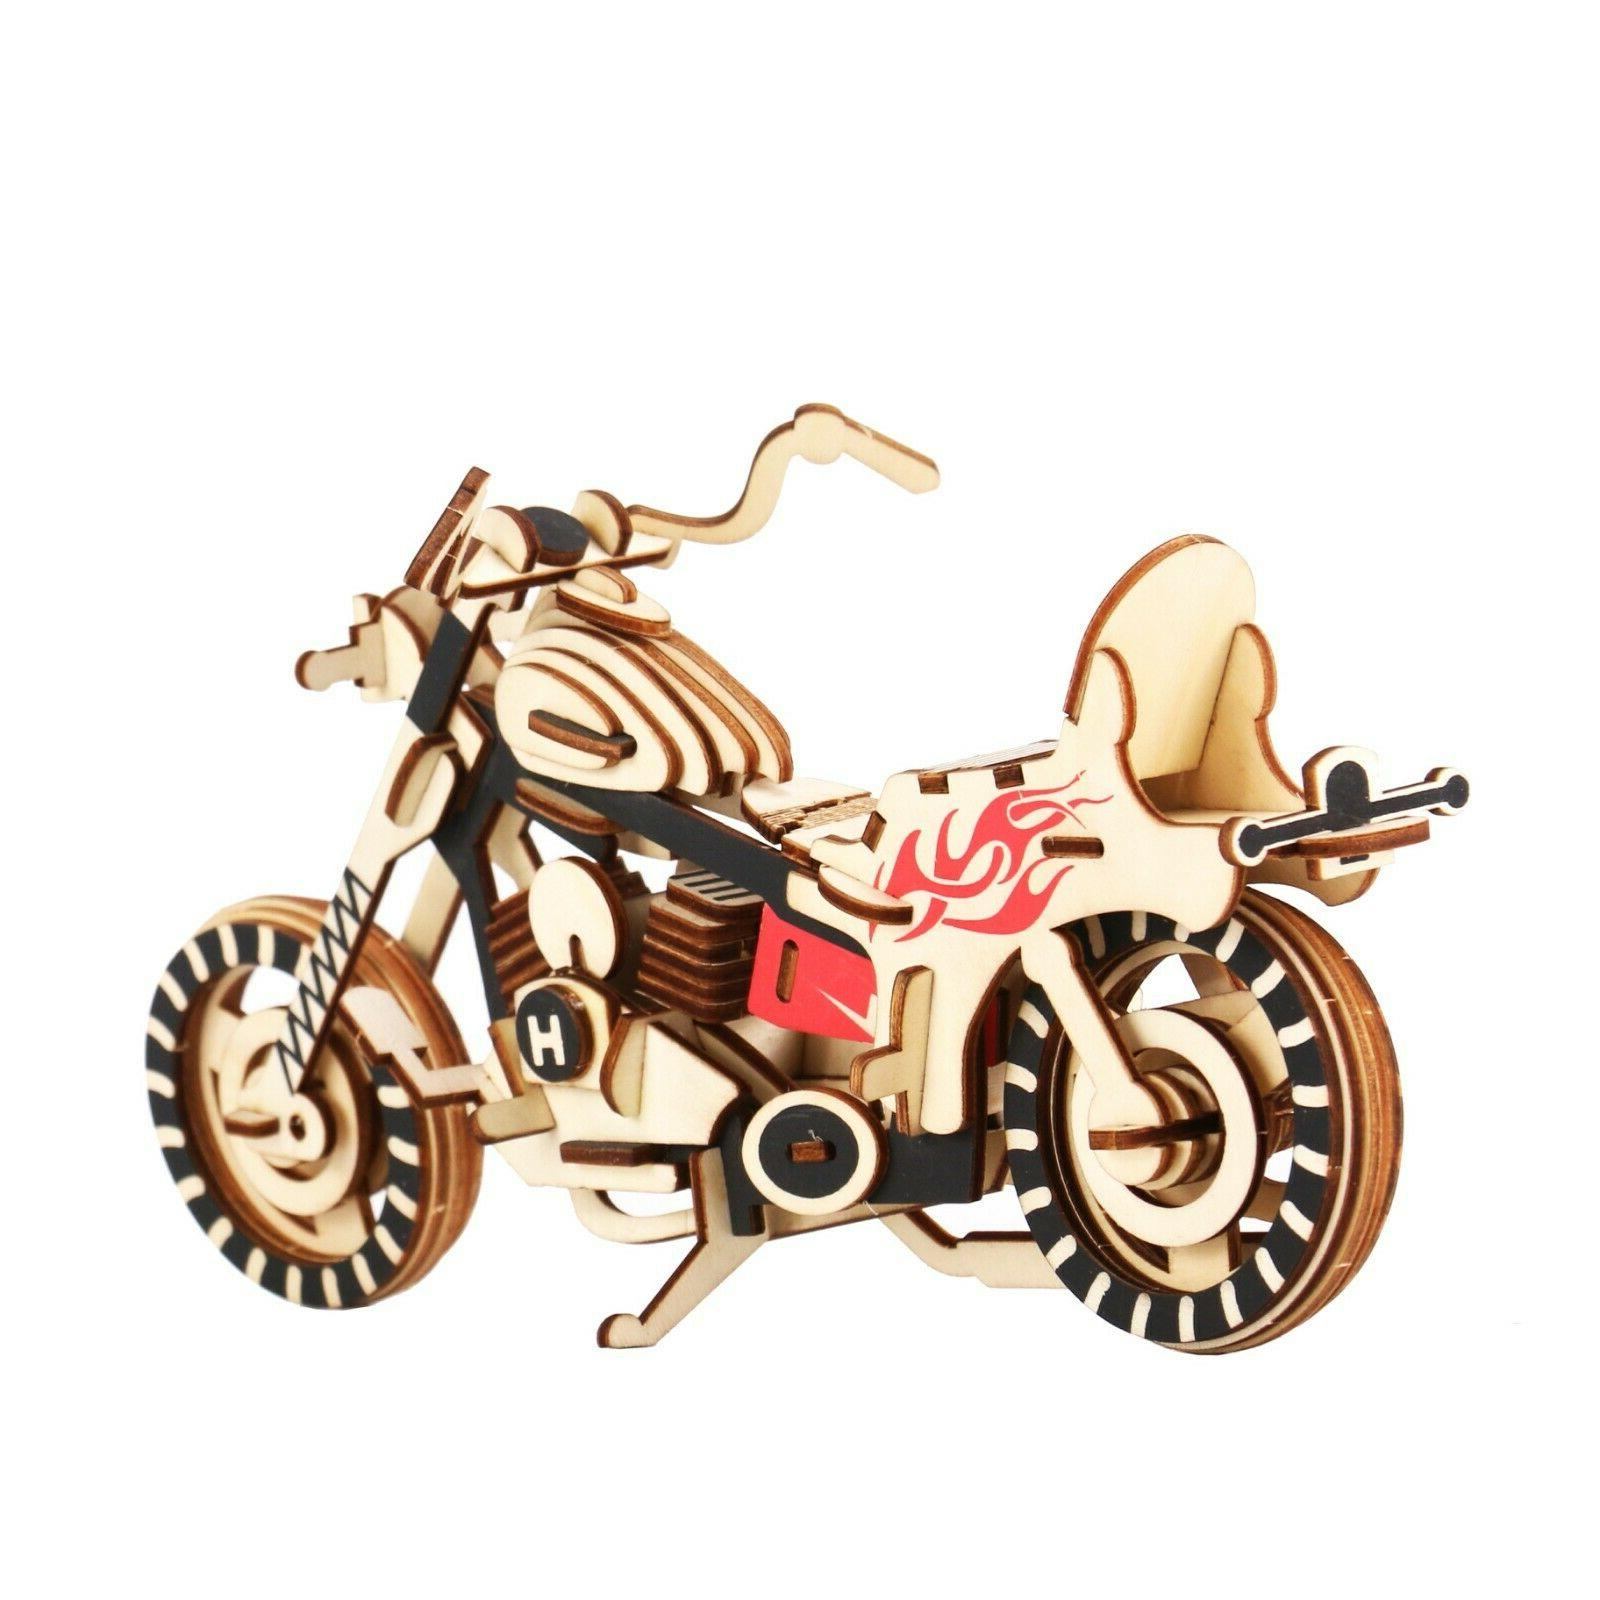 3D Wooden Model Toy Great for &